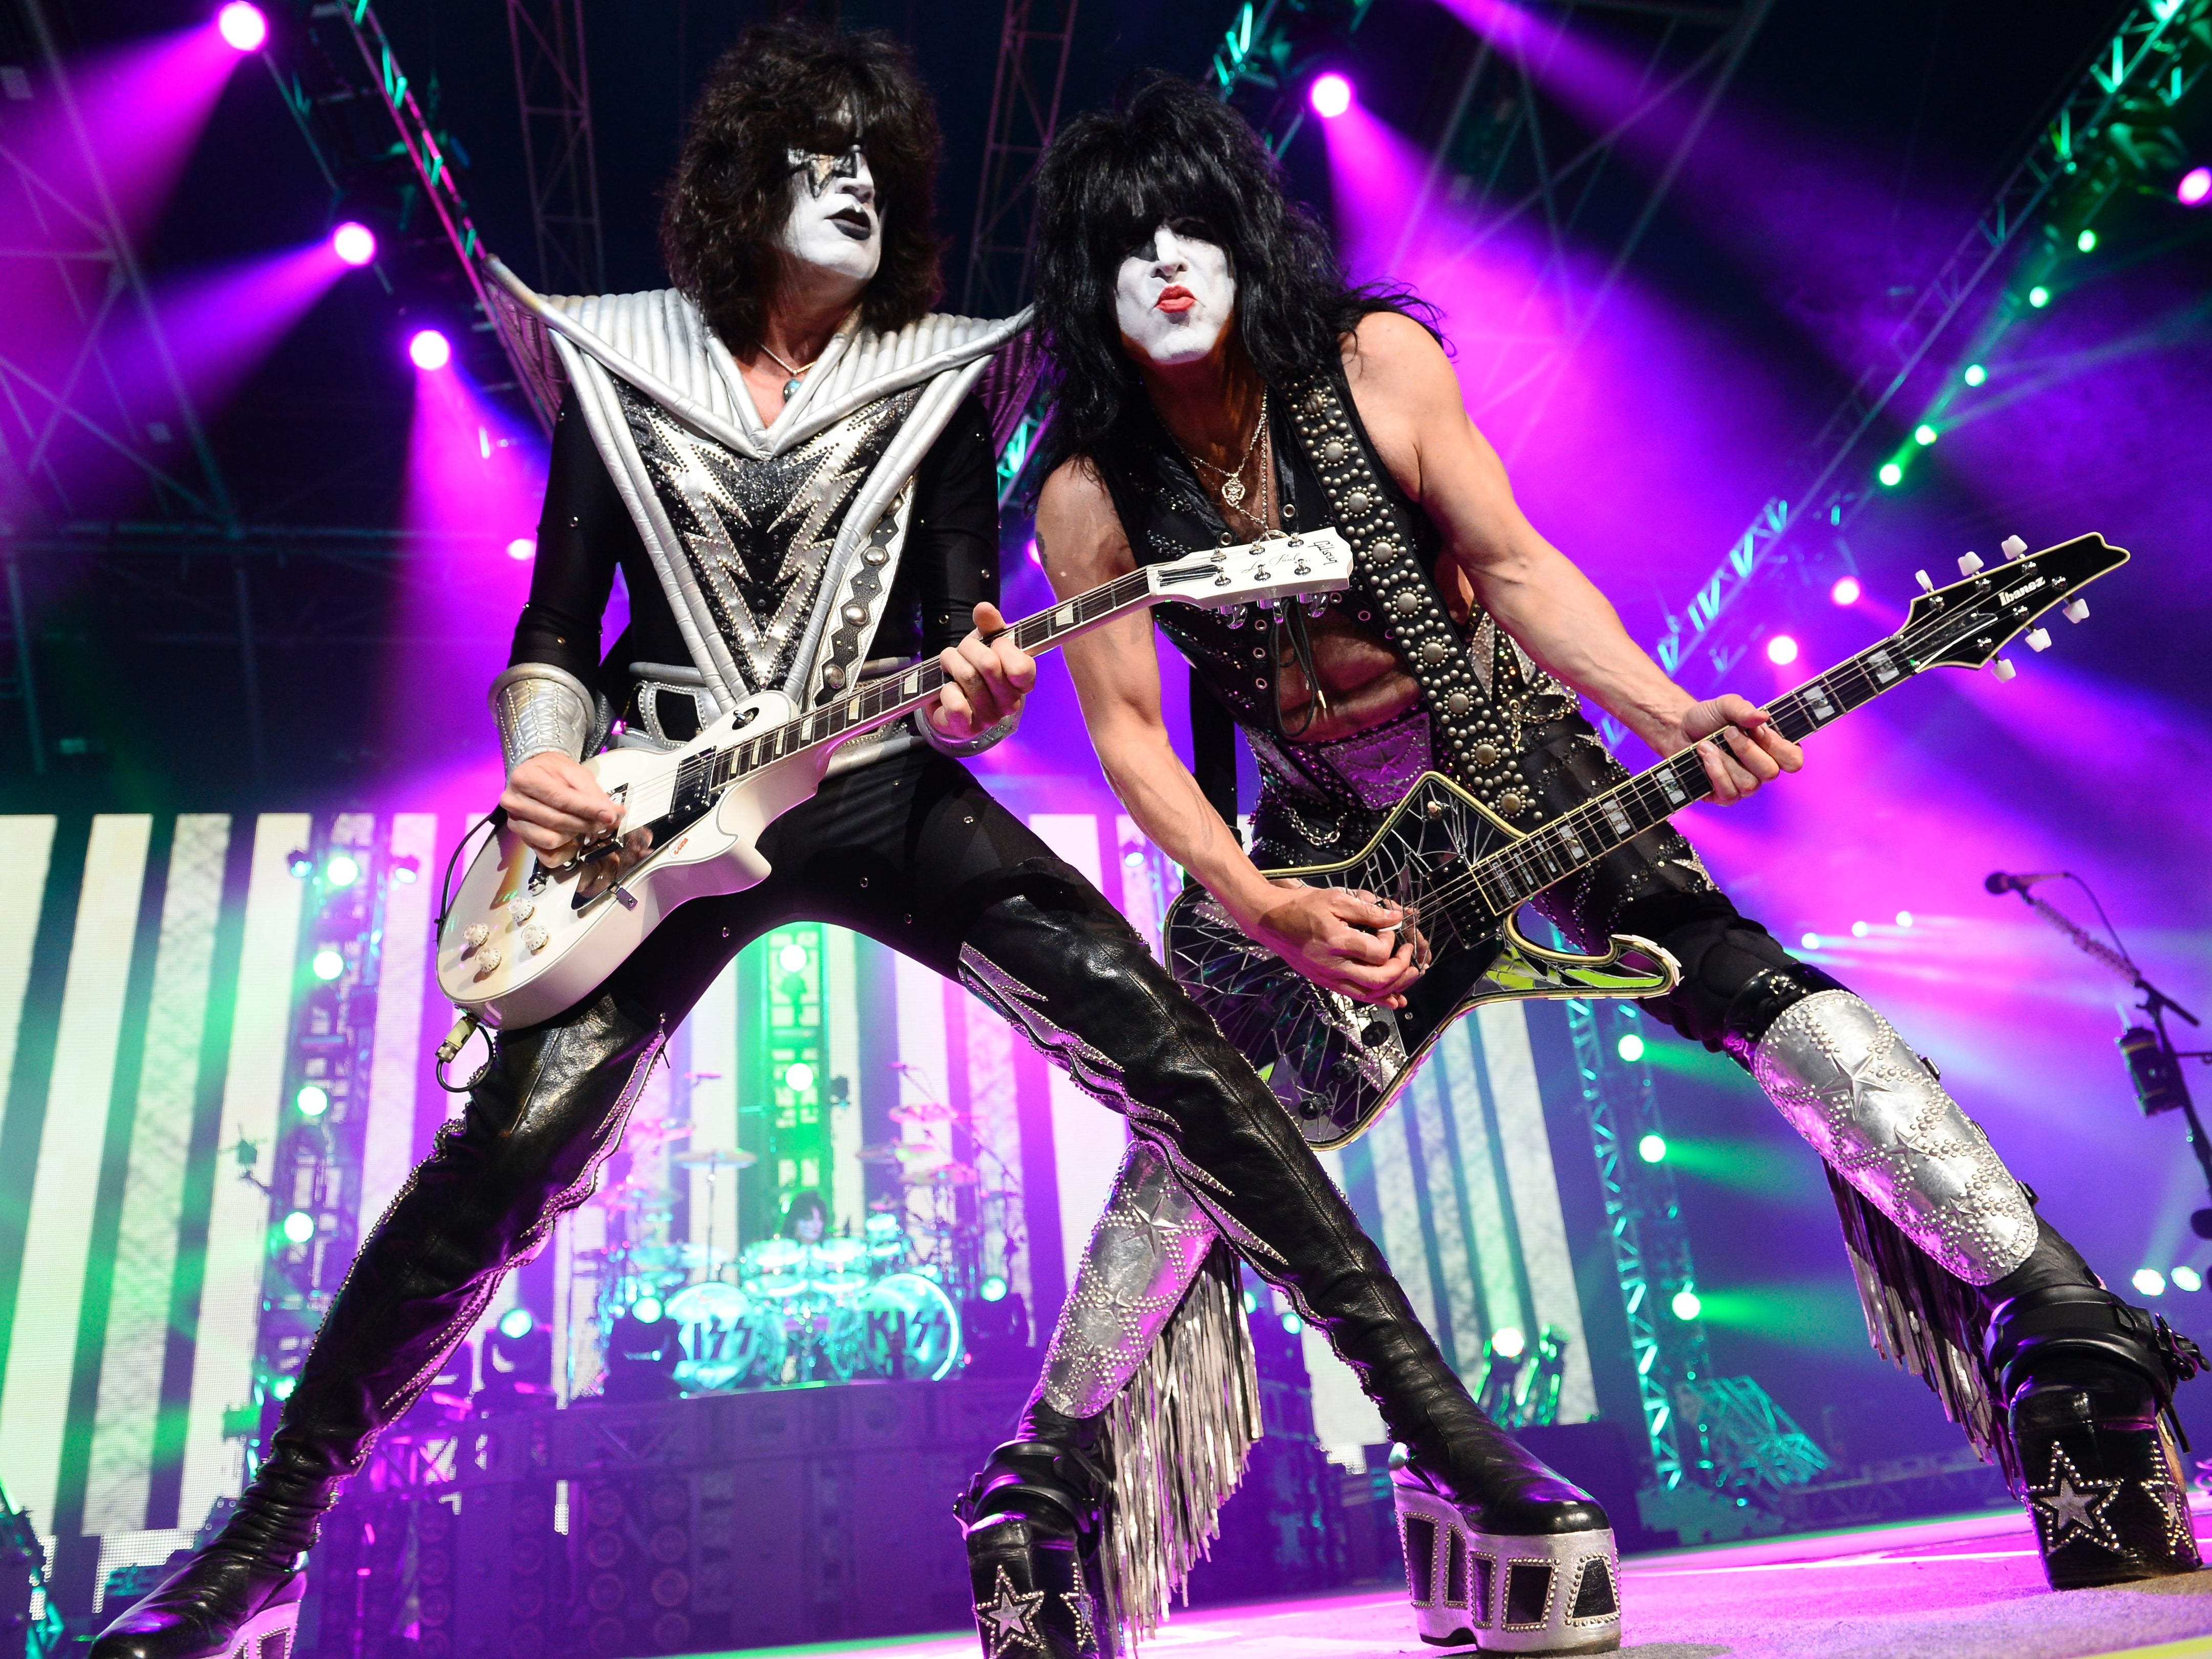 Singer and guitarist Paul Stanley (R) and guitarist Tommy Thayer of US rock band Kiss perform on stage at the Zenith in Paris on June 16, 2015/AFP PHOTO BERTRAND GUAY / AFP / BERTRAND GUAY        (Photo credit should read BERTRAND GUAY/AFP/Getty Images)